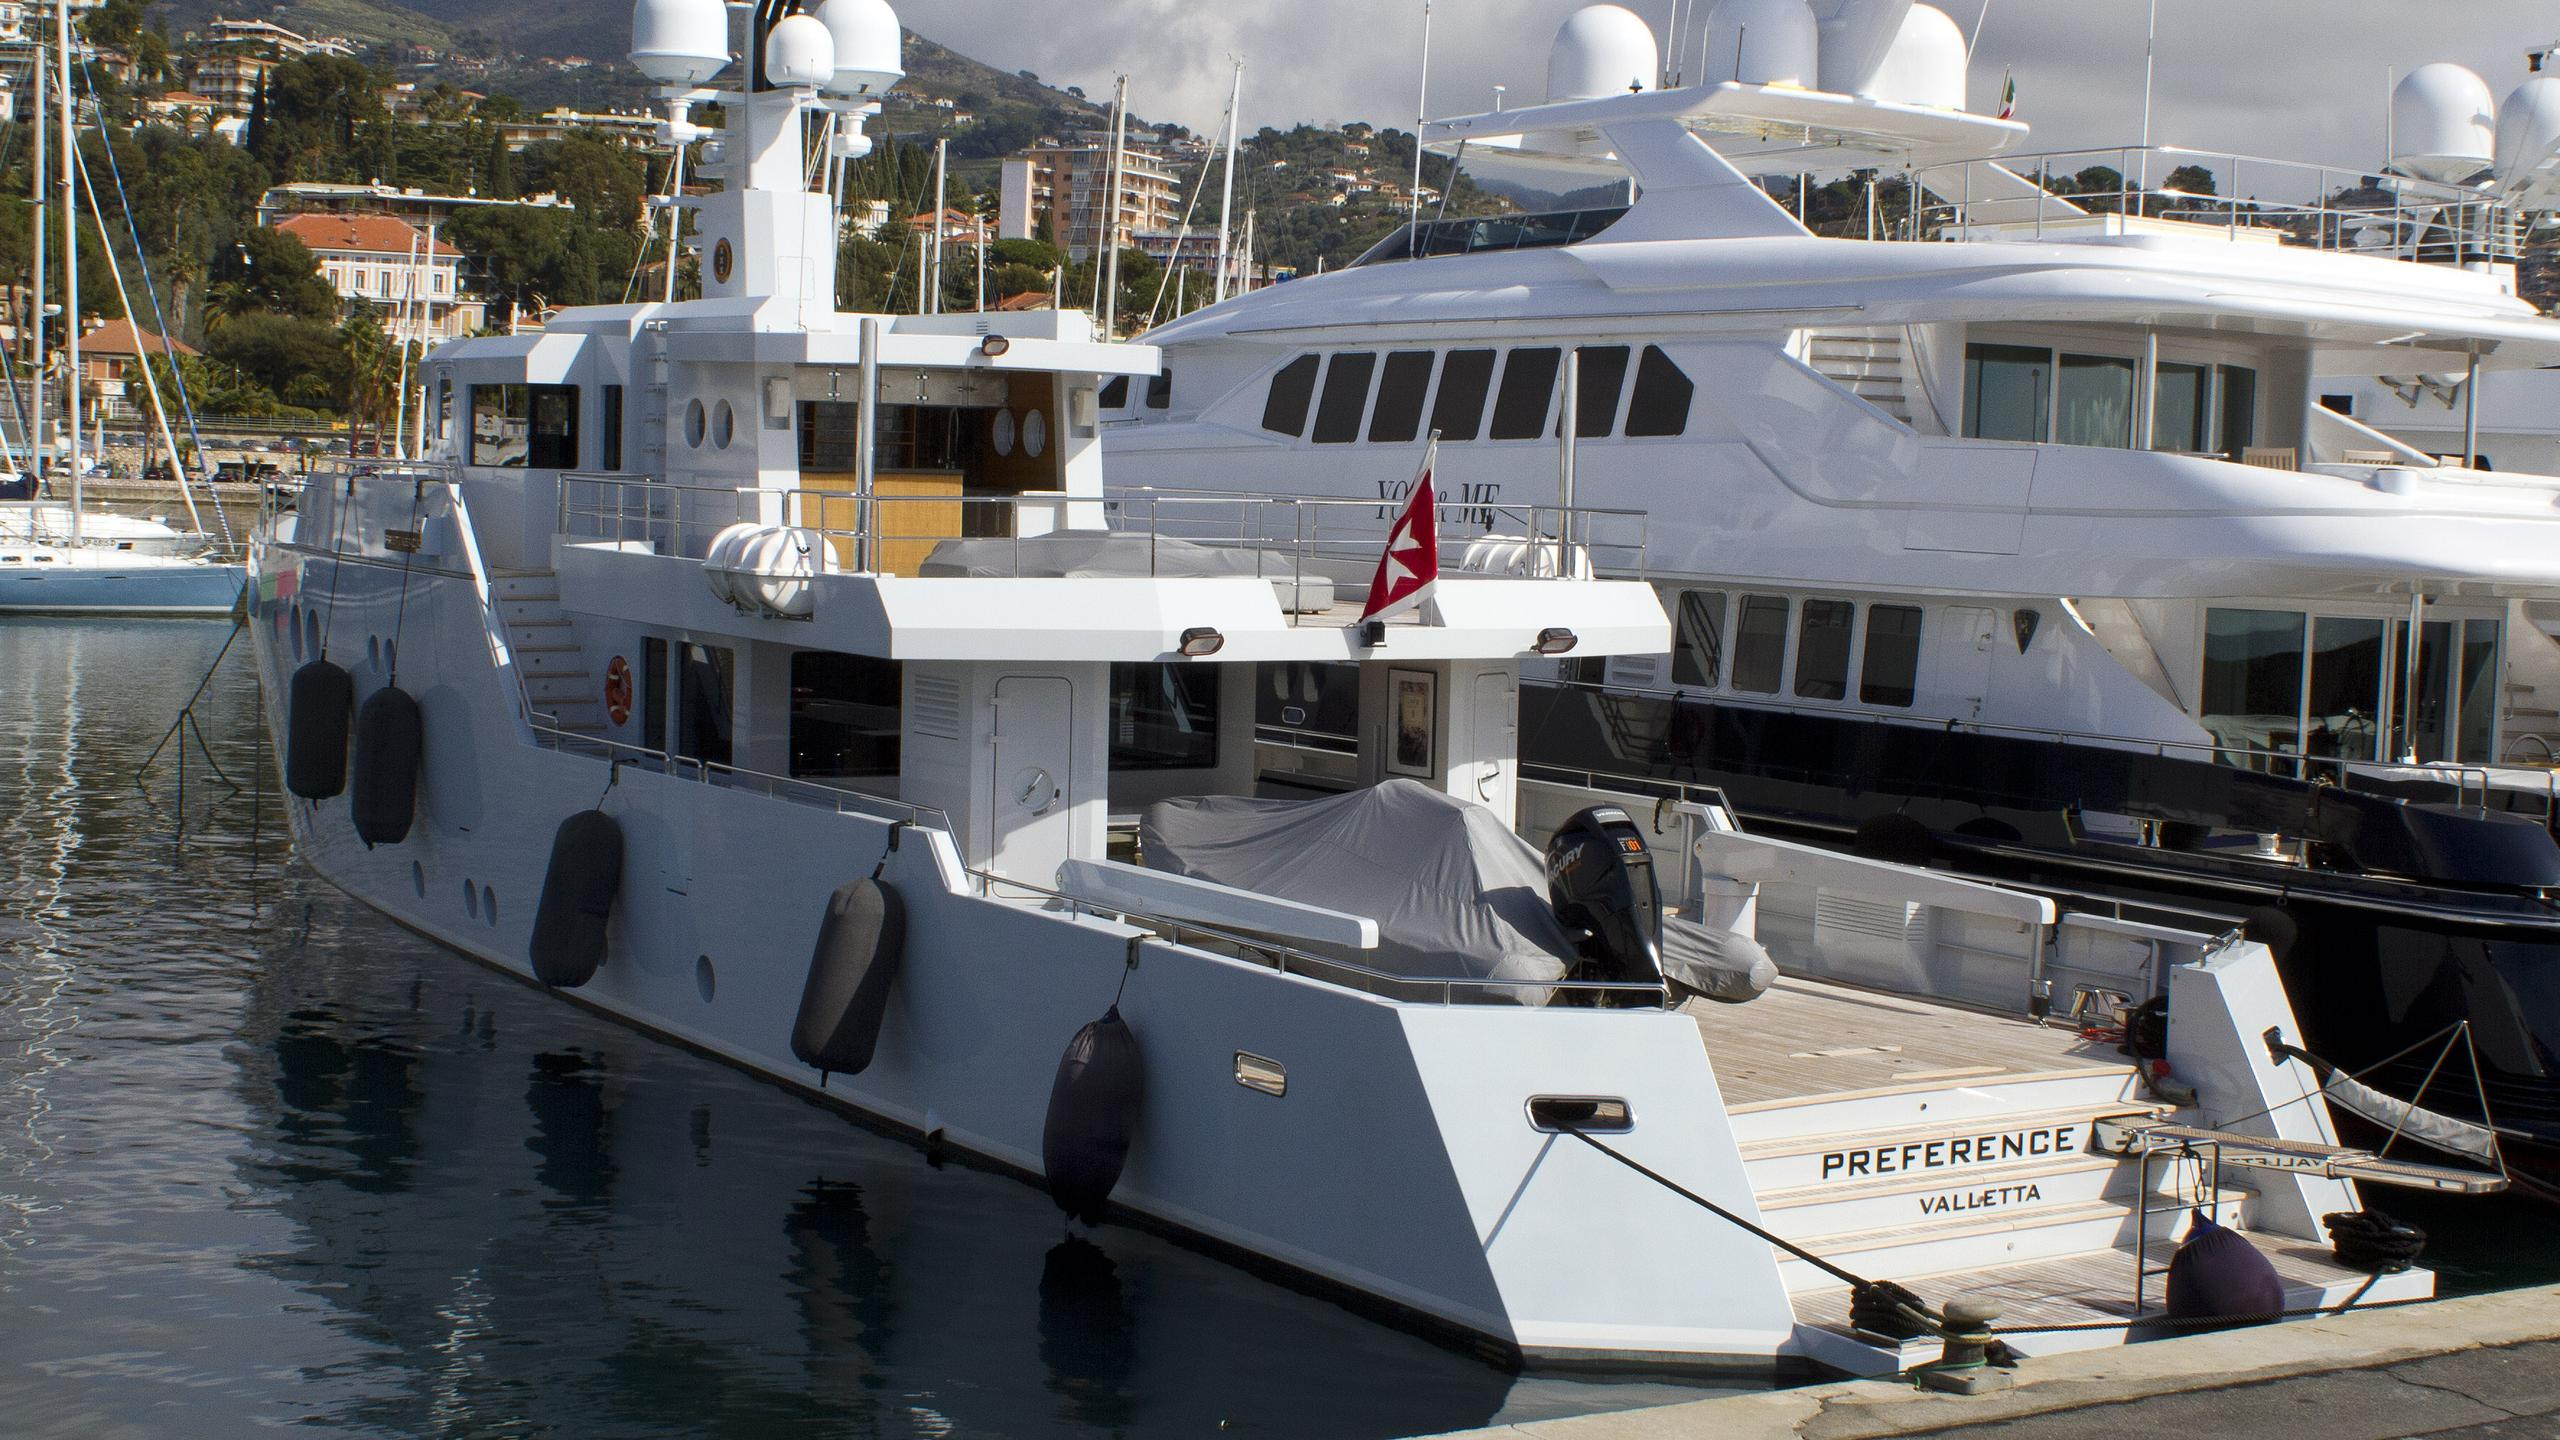 preference-motor-yacht-tansu-2011-36m-stern-moored